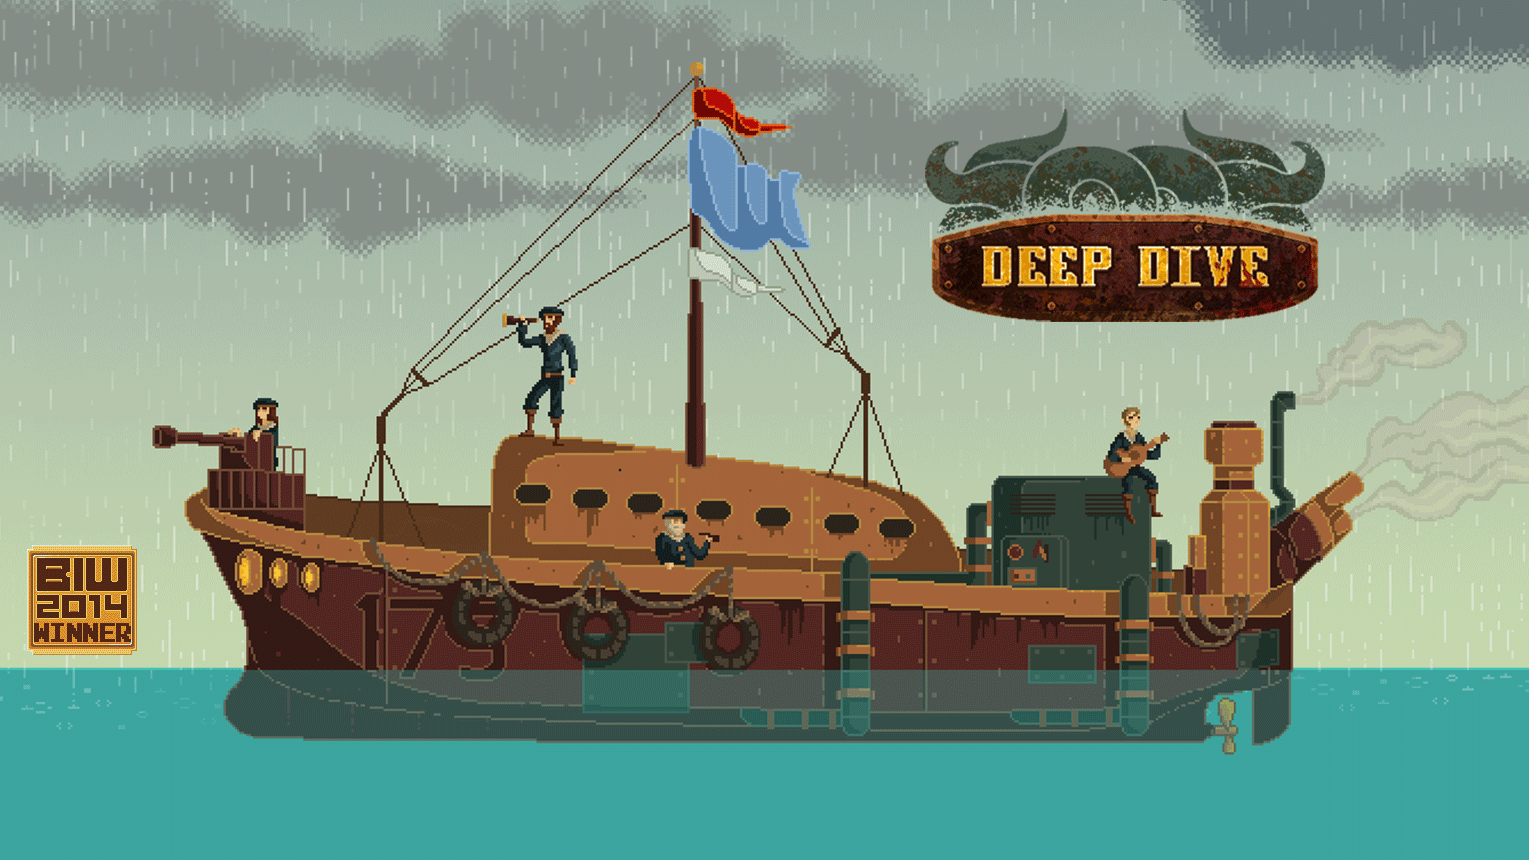 Deep Dive was the winner of the 2014 Baltimore Innovation Week Independent Video Game of the Year award.